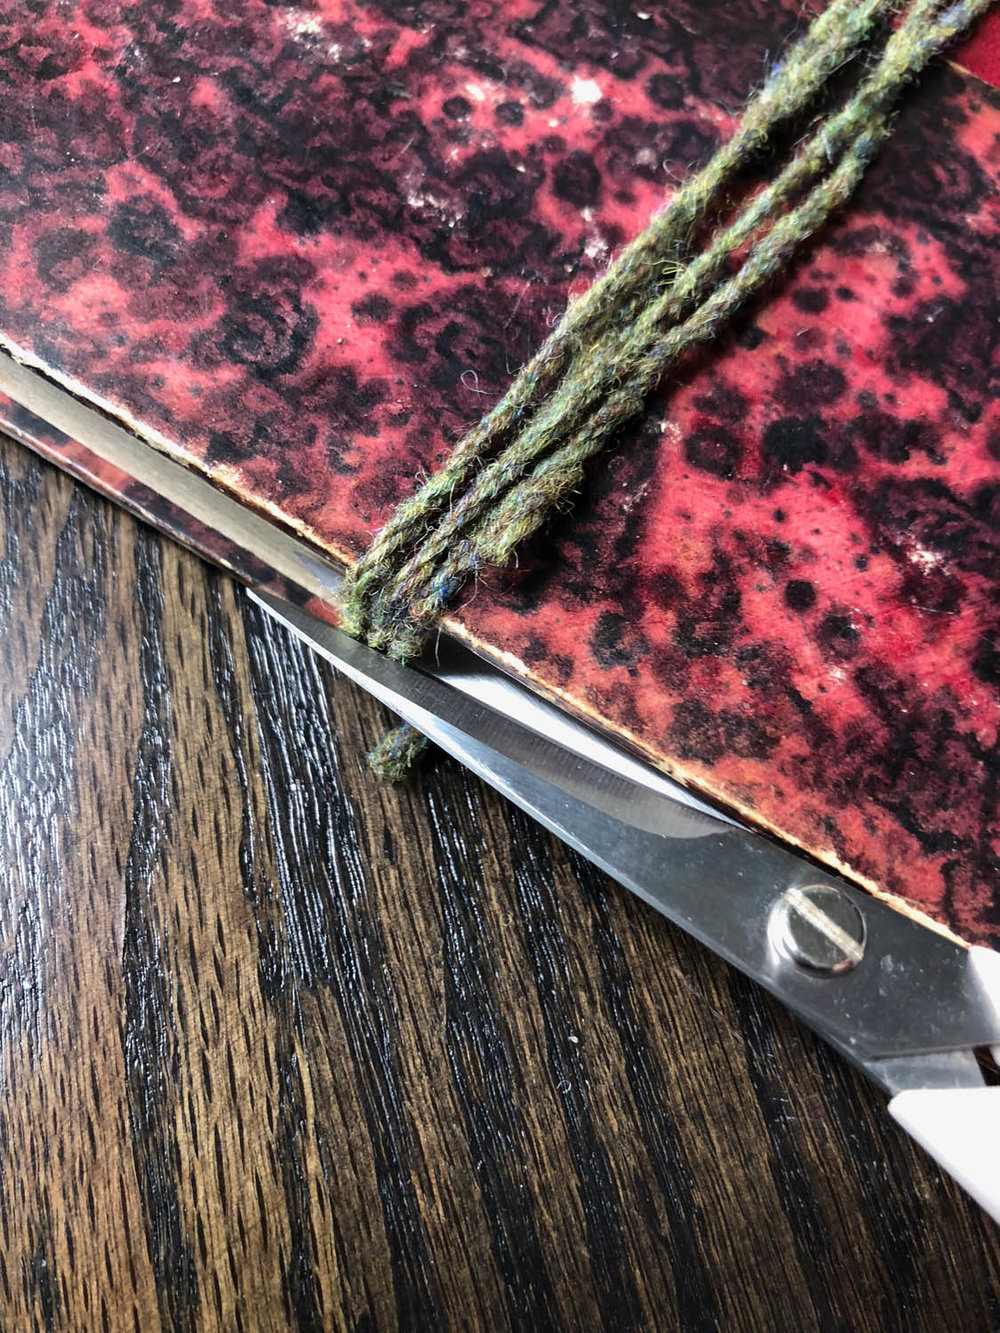 trimming yarn wrapped around book as a tassel guide